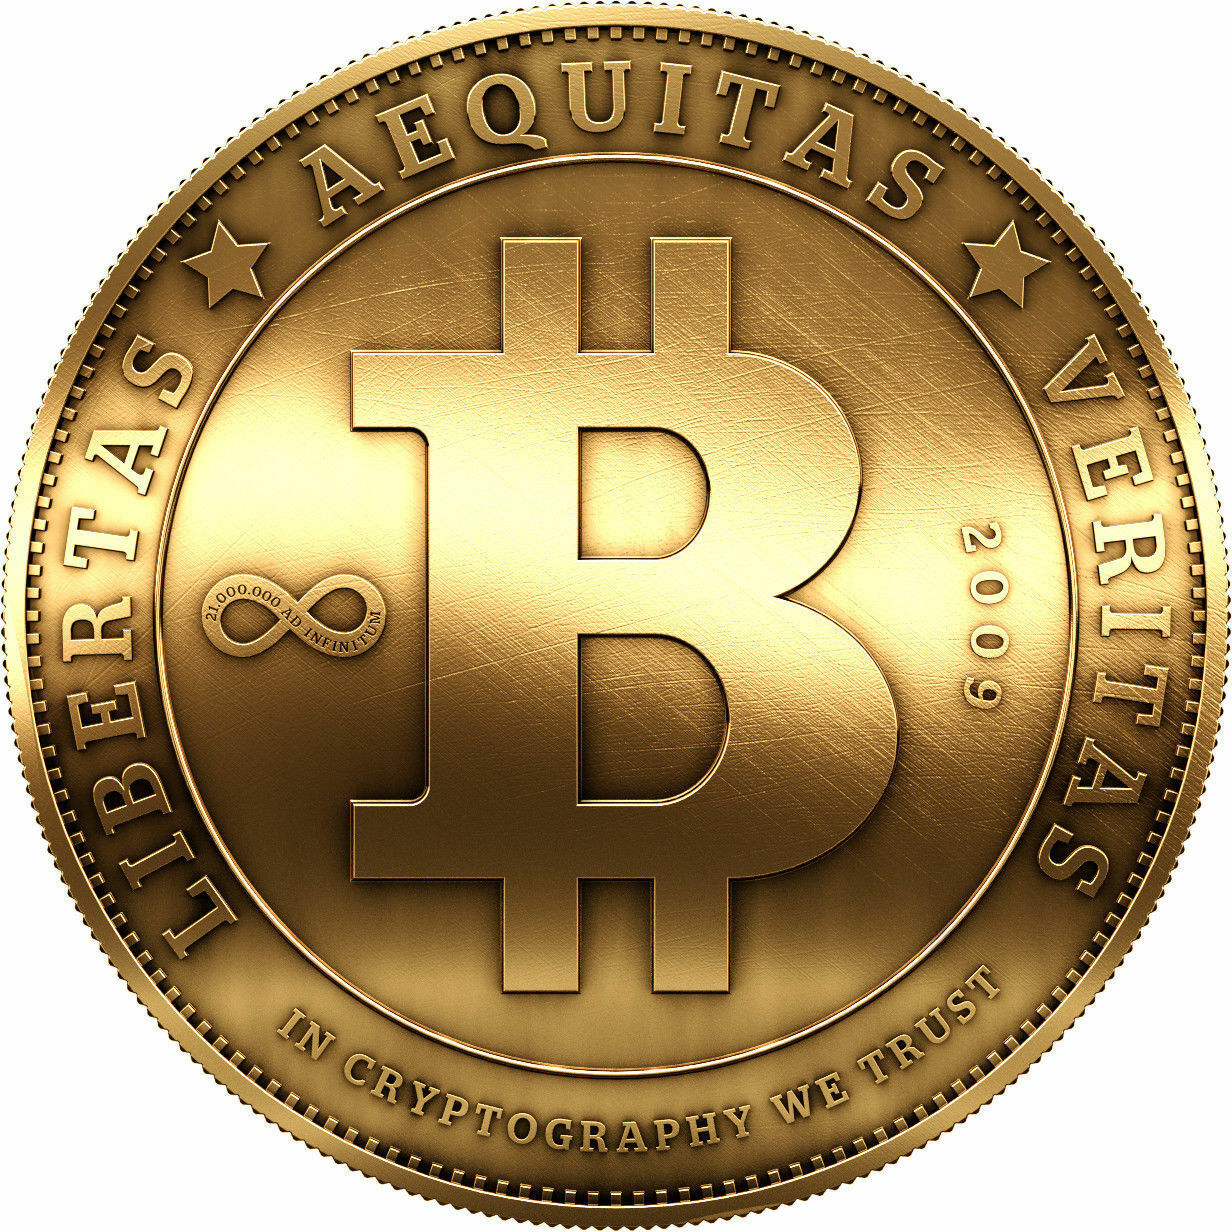 Minado bitcoins for sale online sports betting that accepts paypal